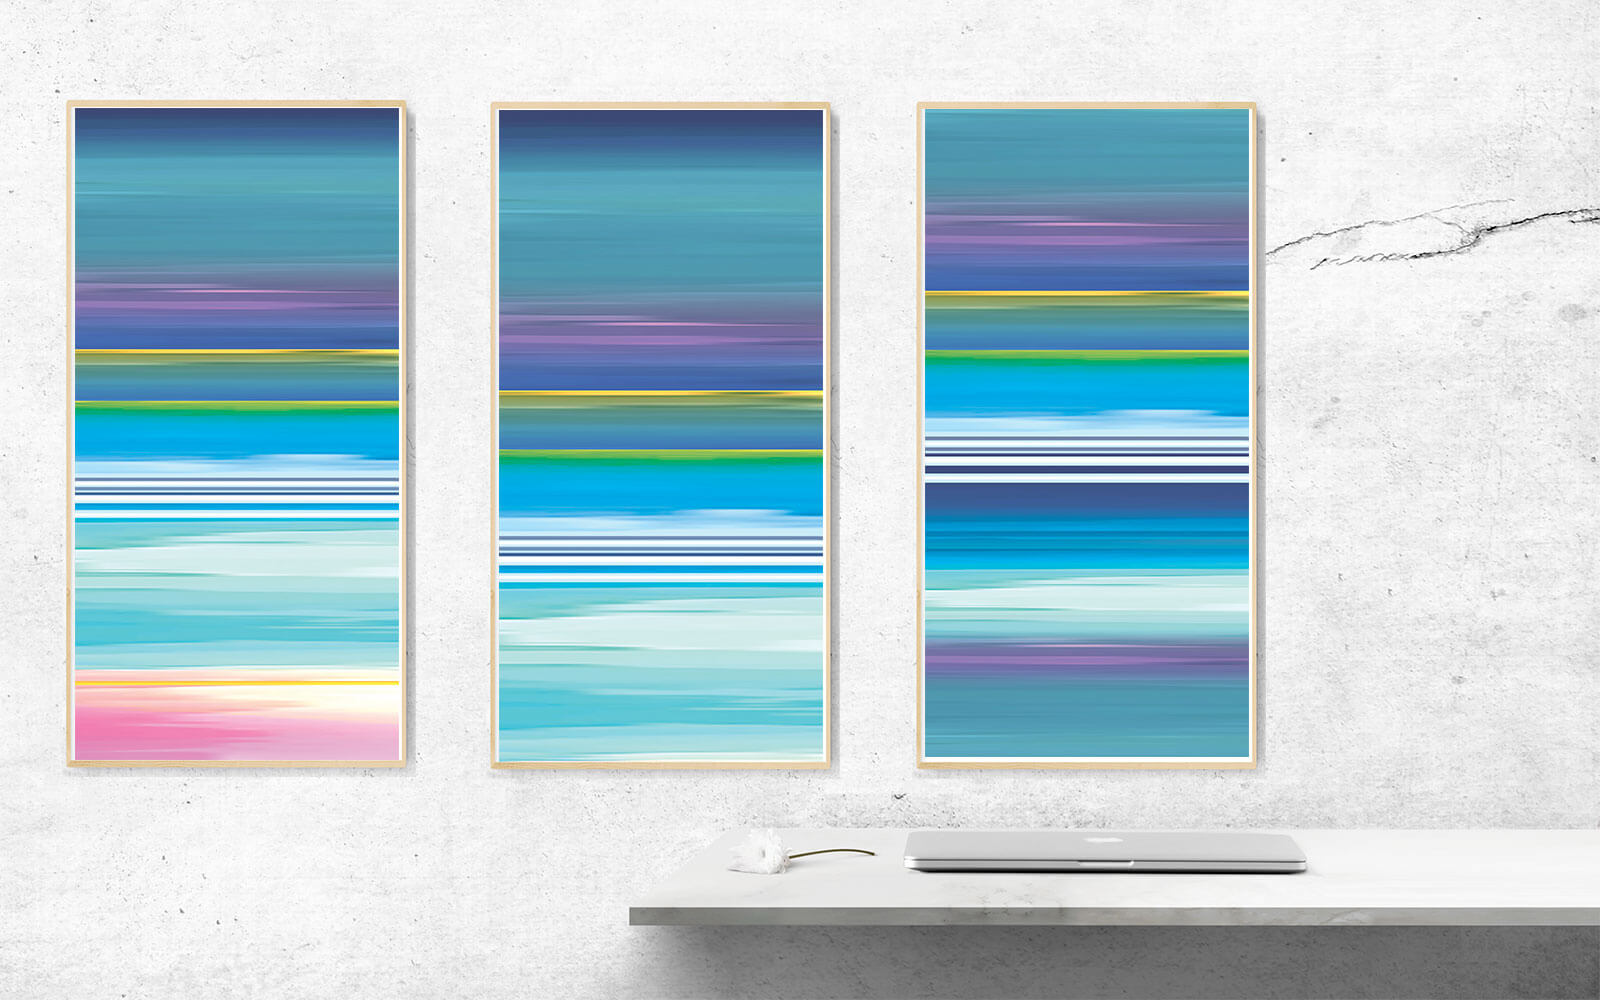 City Reflections Series -  New York Hudson River.  Abstract   Art for Sale Triptych £550. Art for Sitting Room, Hall Way, Bright Room.